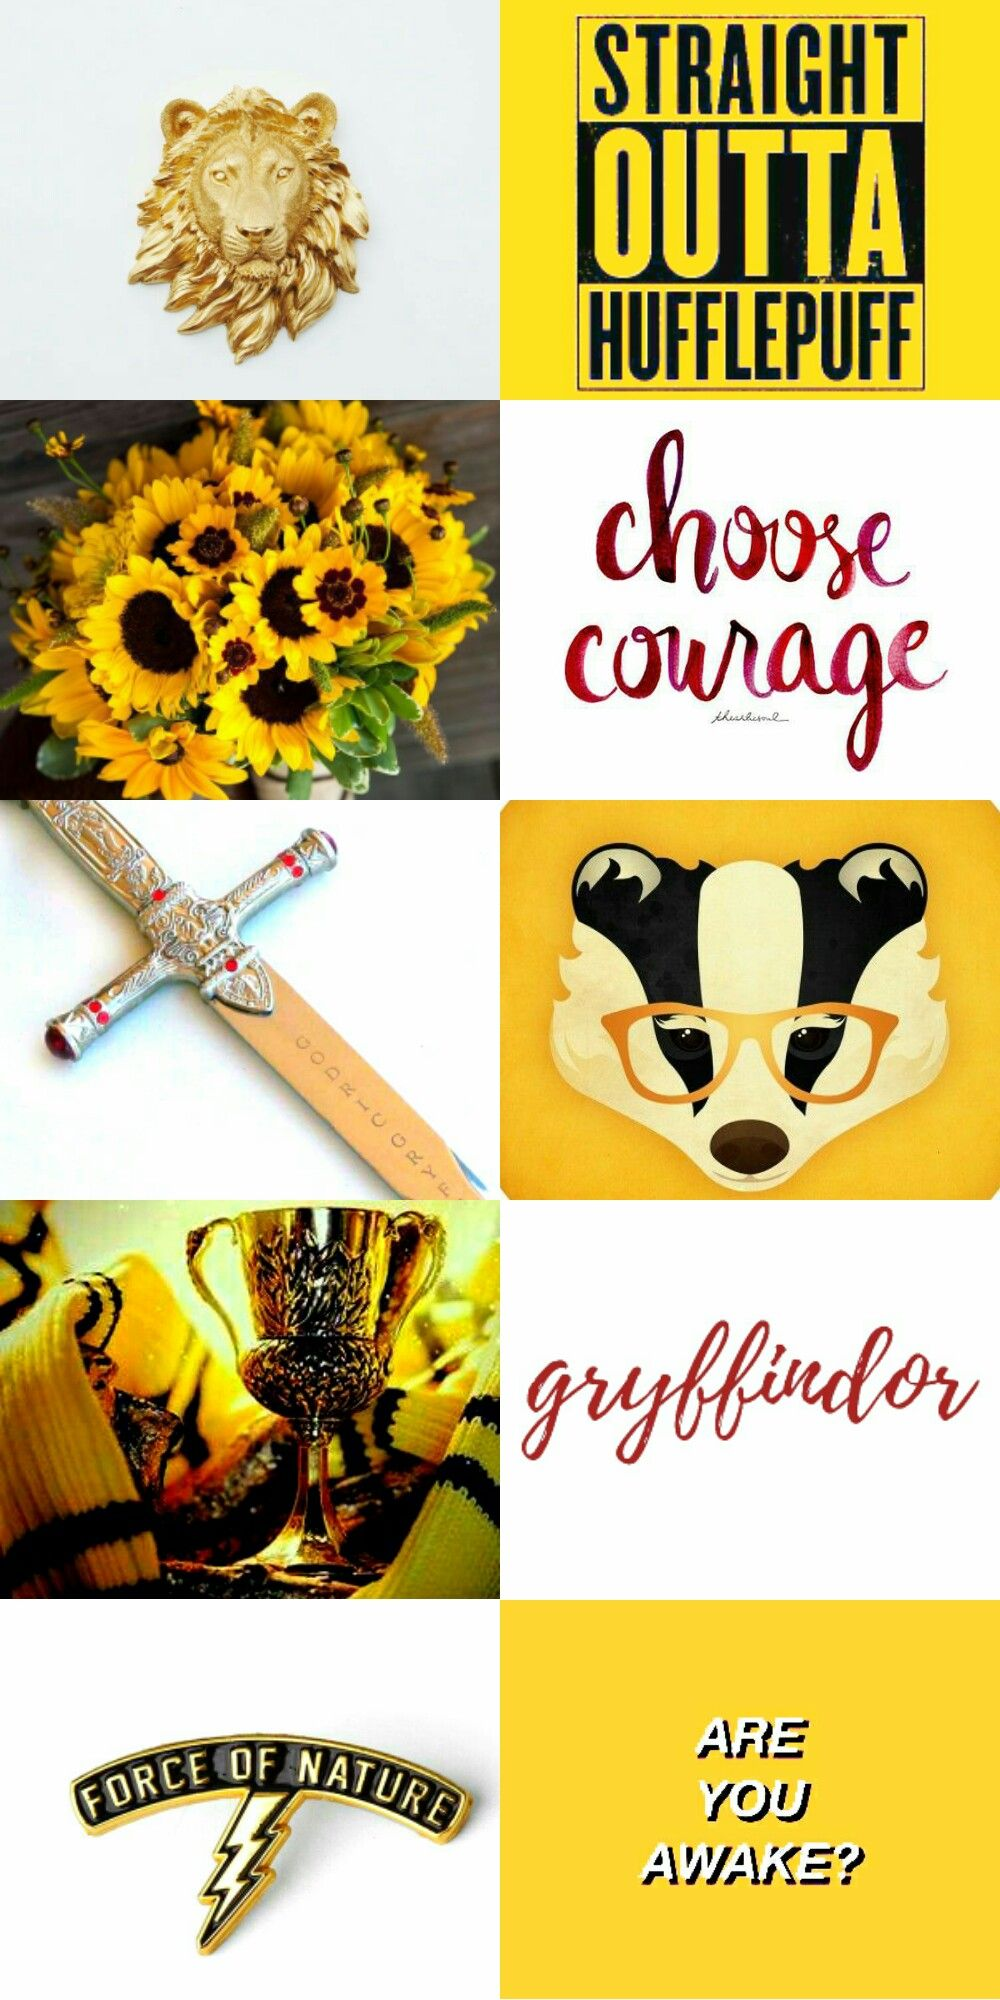 Everyone Is A Little Gryffindor Harry Potter Universal Harry Potter Fantastic Beasts Hufflepuff